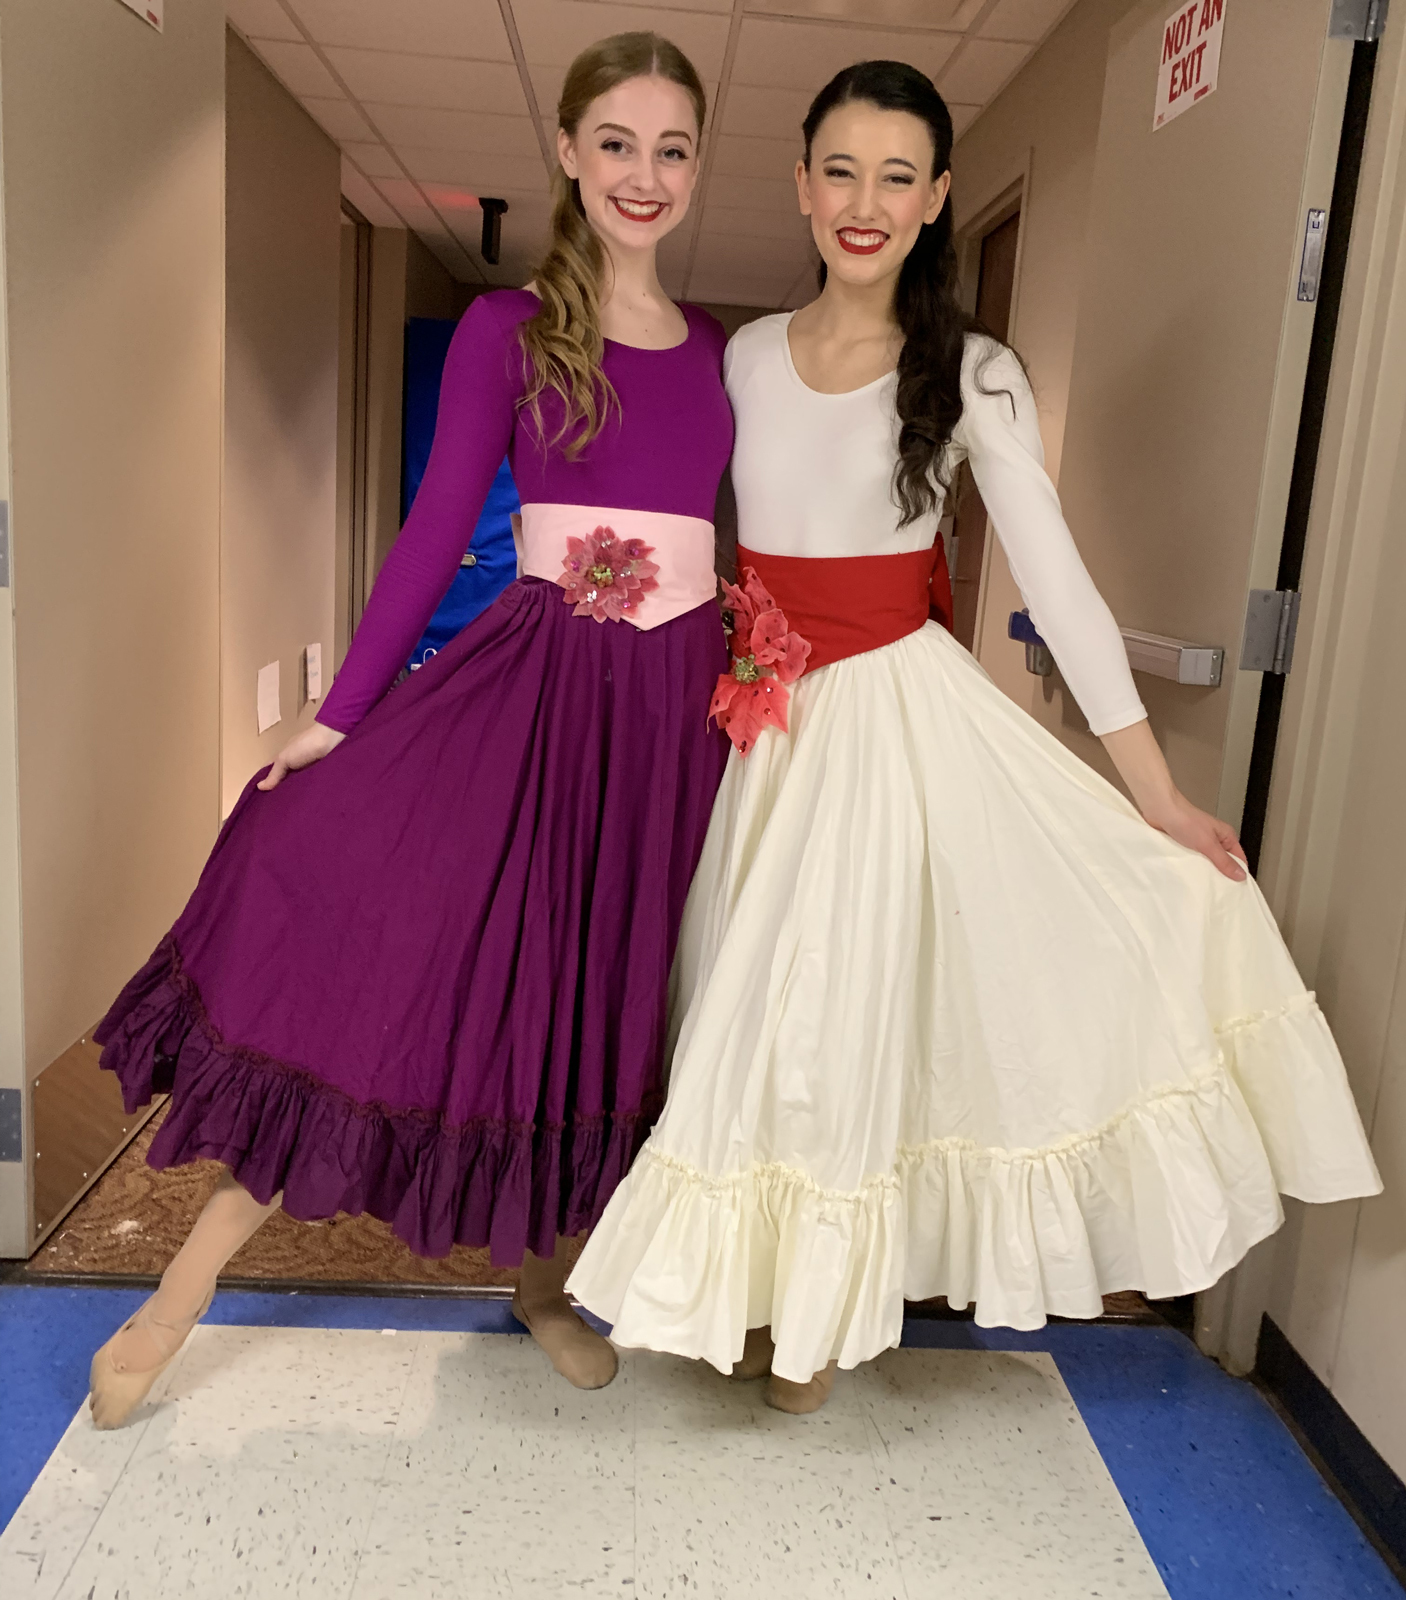 Ashley Ellis and a fellow dancer in swirly dresses